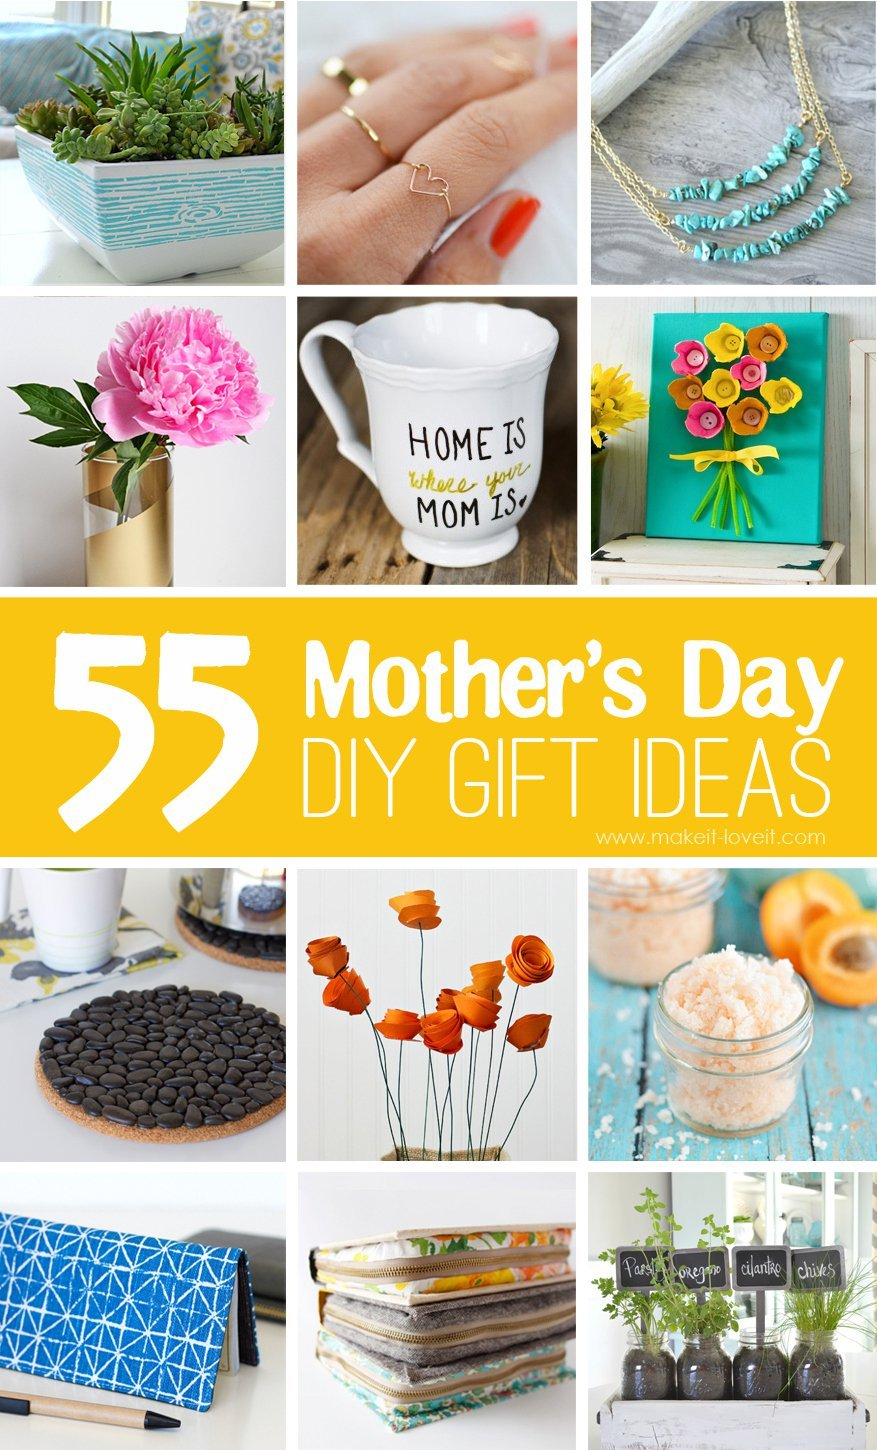 55-Mothers-Day-DIY-Gift-Ideas